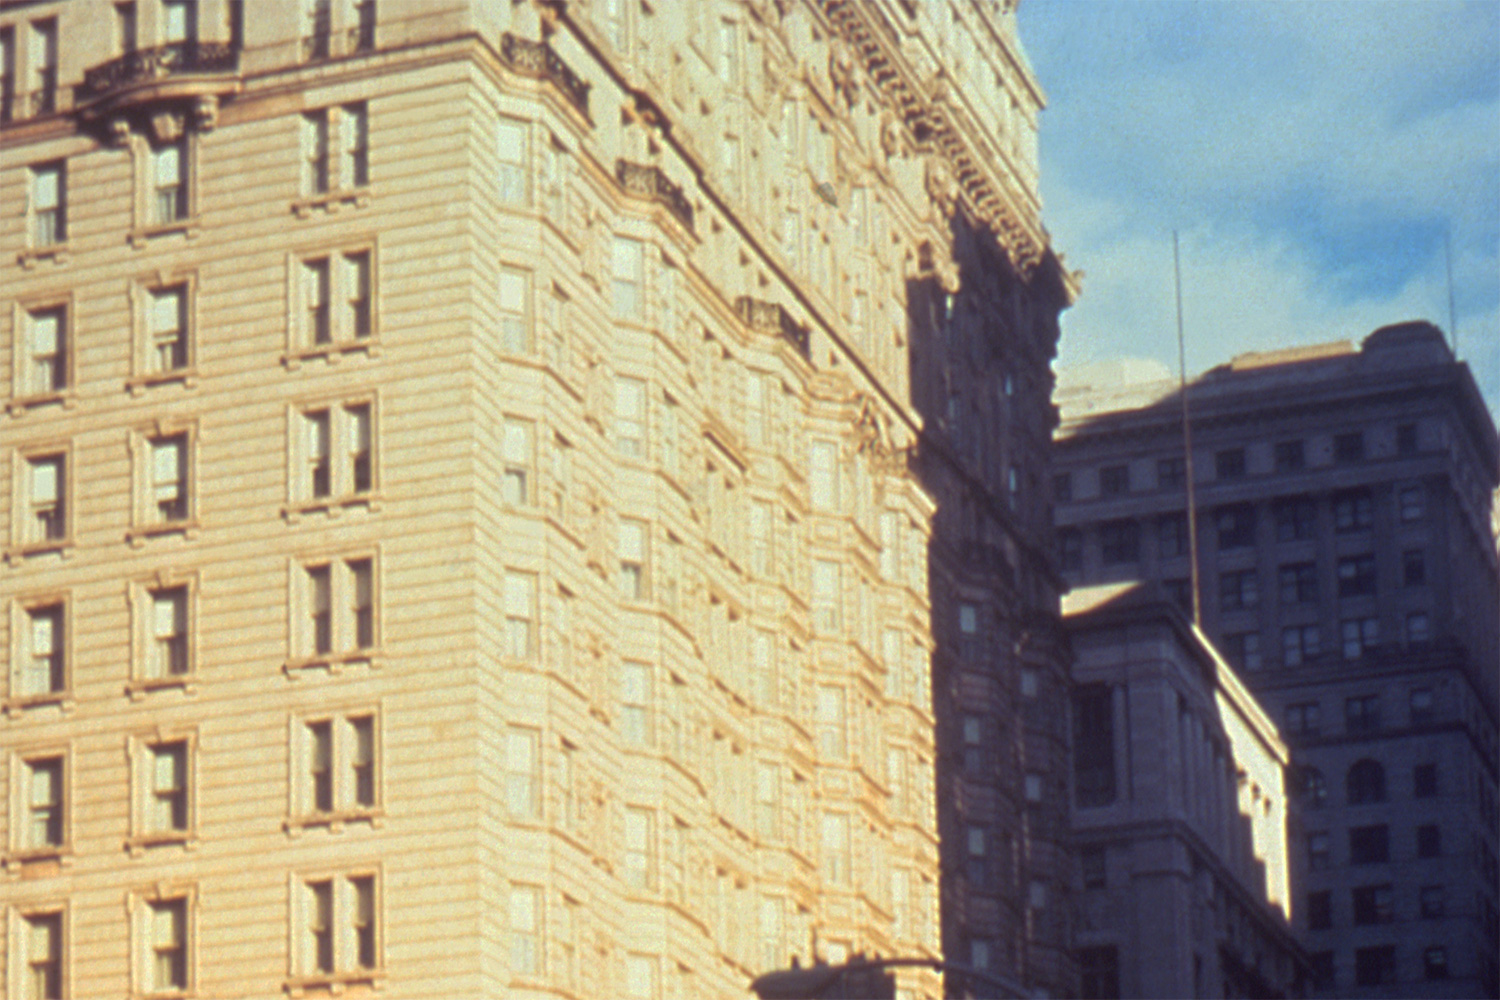 The photo shows an old, magnificent stone building against a bright blue sky. It's a grainy photo, suggestive of a poor quality color film stock or a cheap camera.